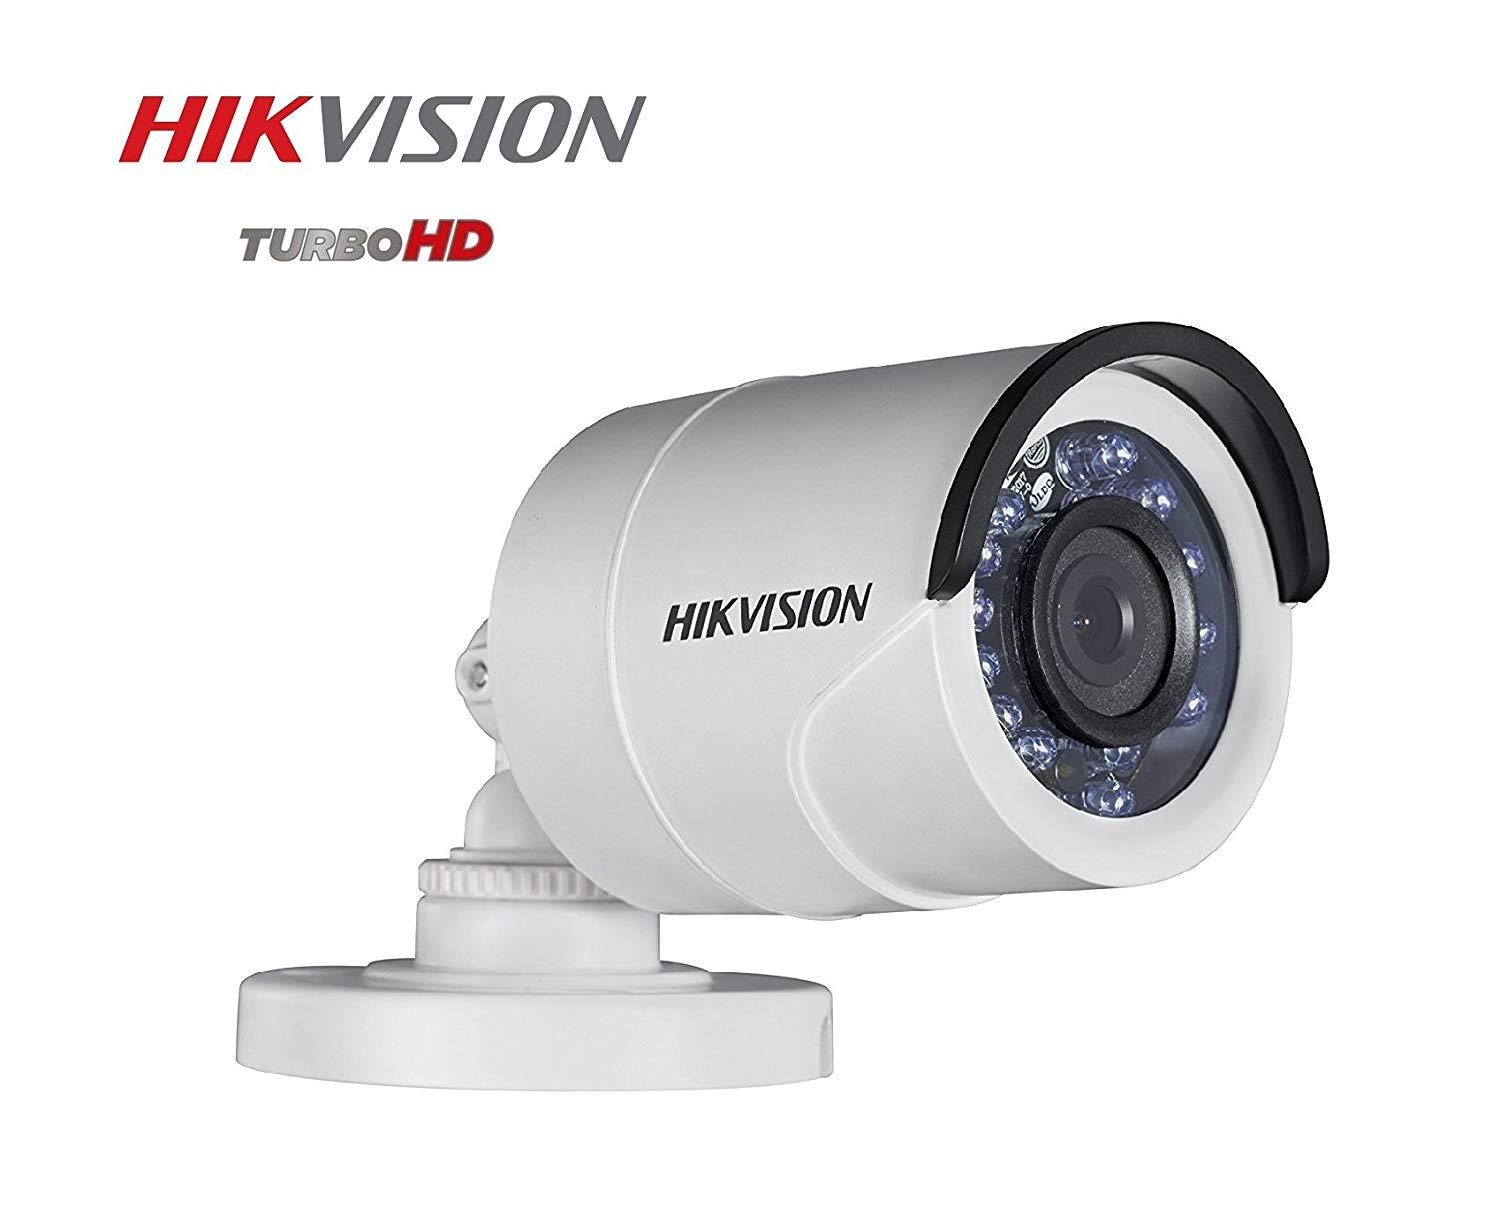 Camera Exterieur Wifi Hikvision Cctv Camera Turbo Hd 720p